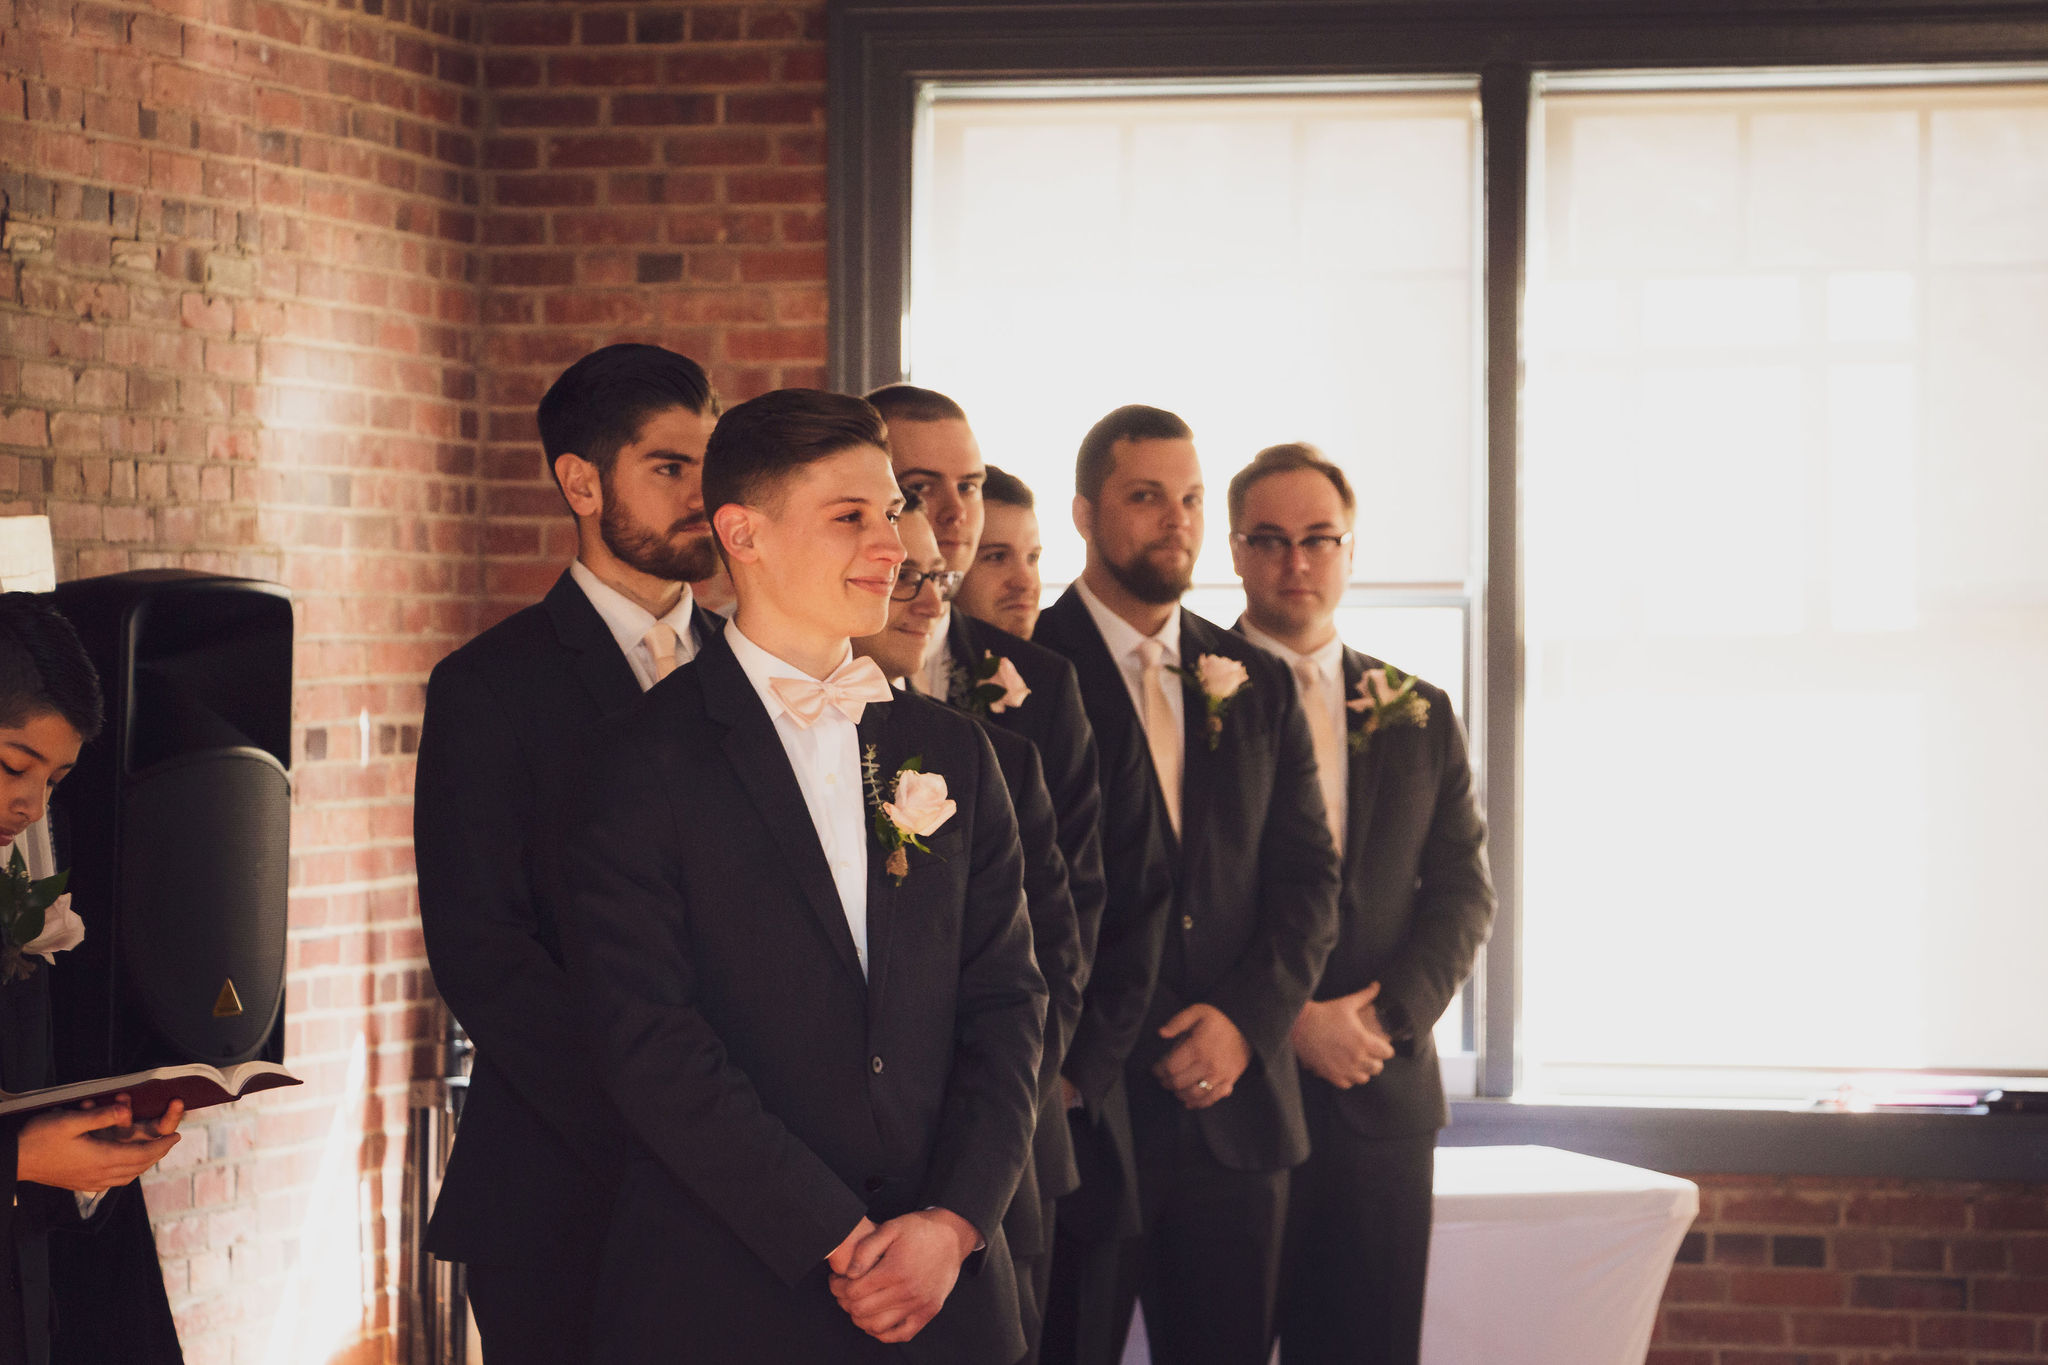 groom on wedding day, groom at alter with pink rose and 6 groomsmen brick venue